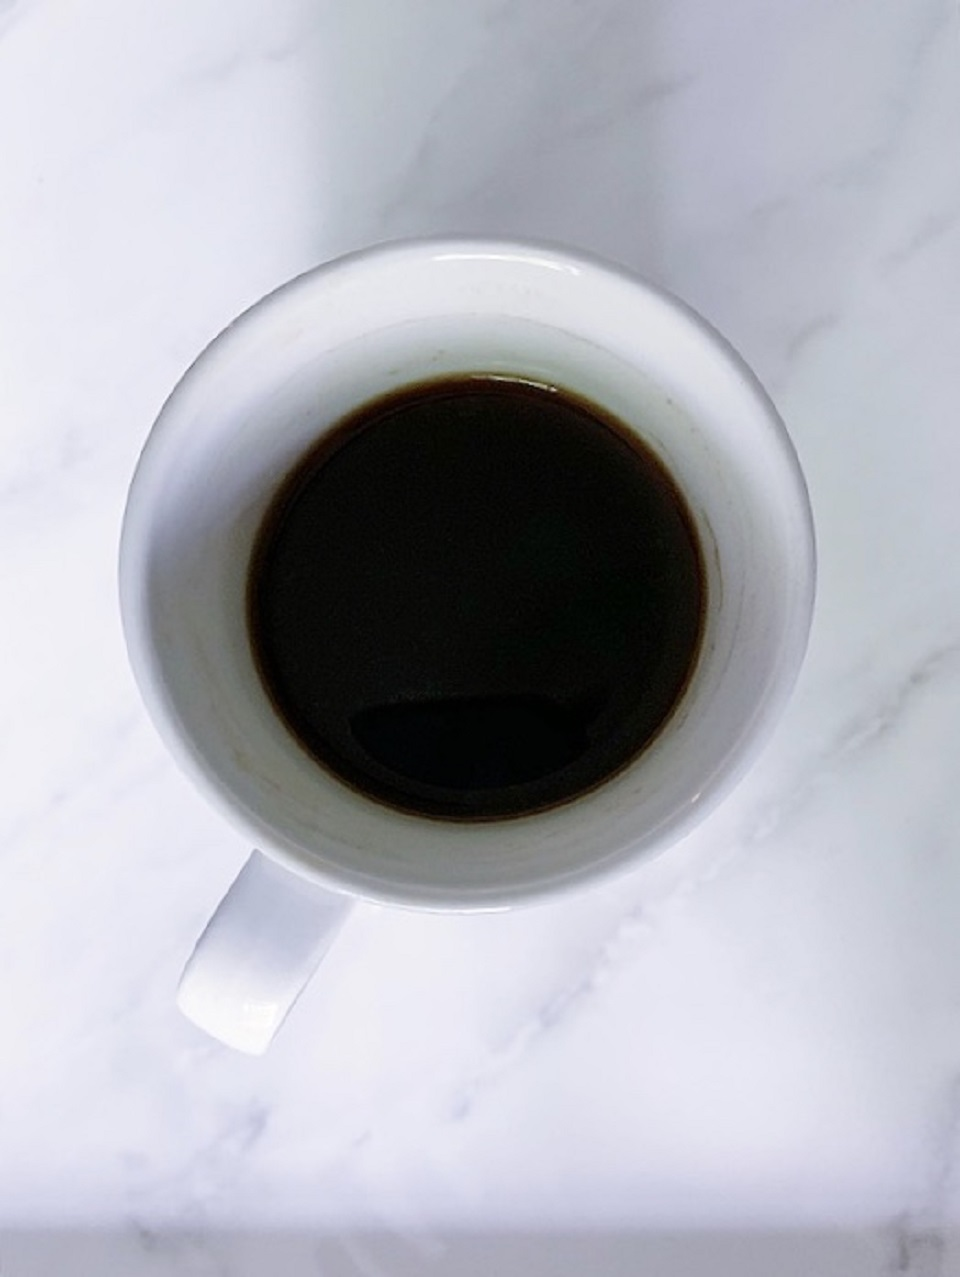 Steeped Coffee black #ad